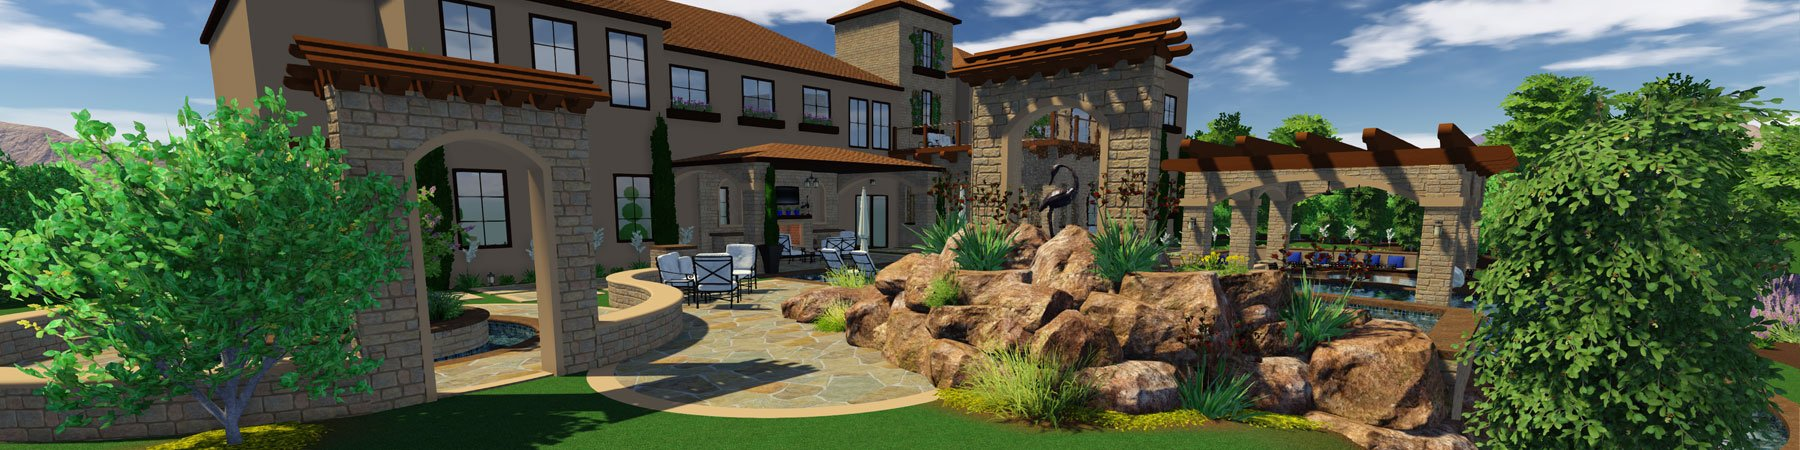 Request a free pool and landscape design software trial of for Pool design software free online